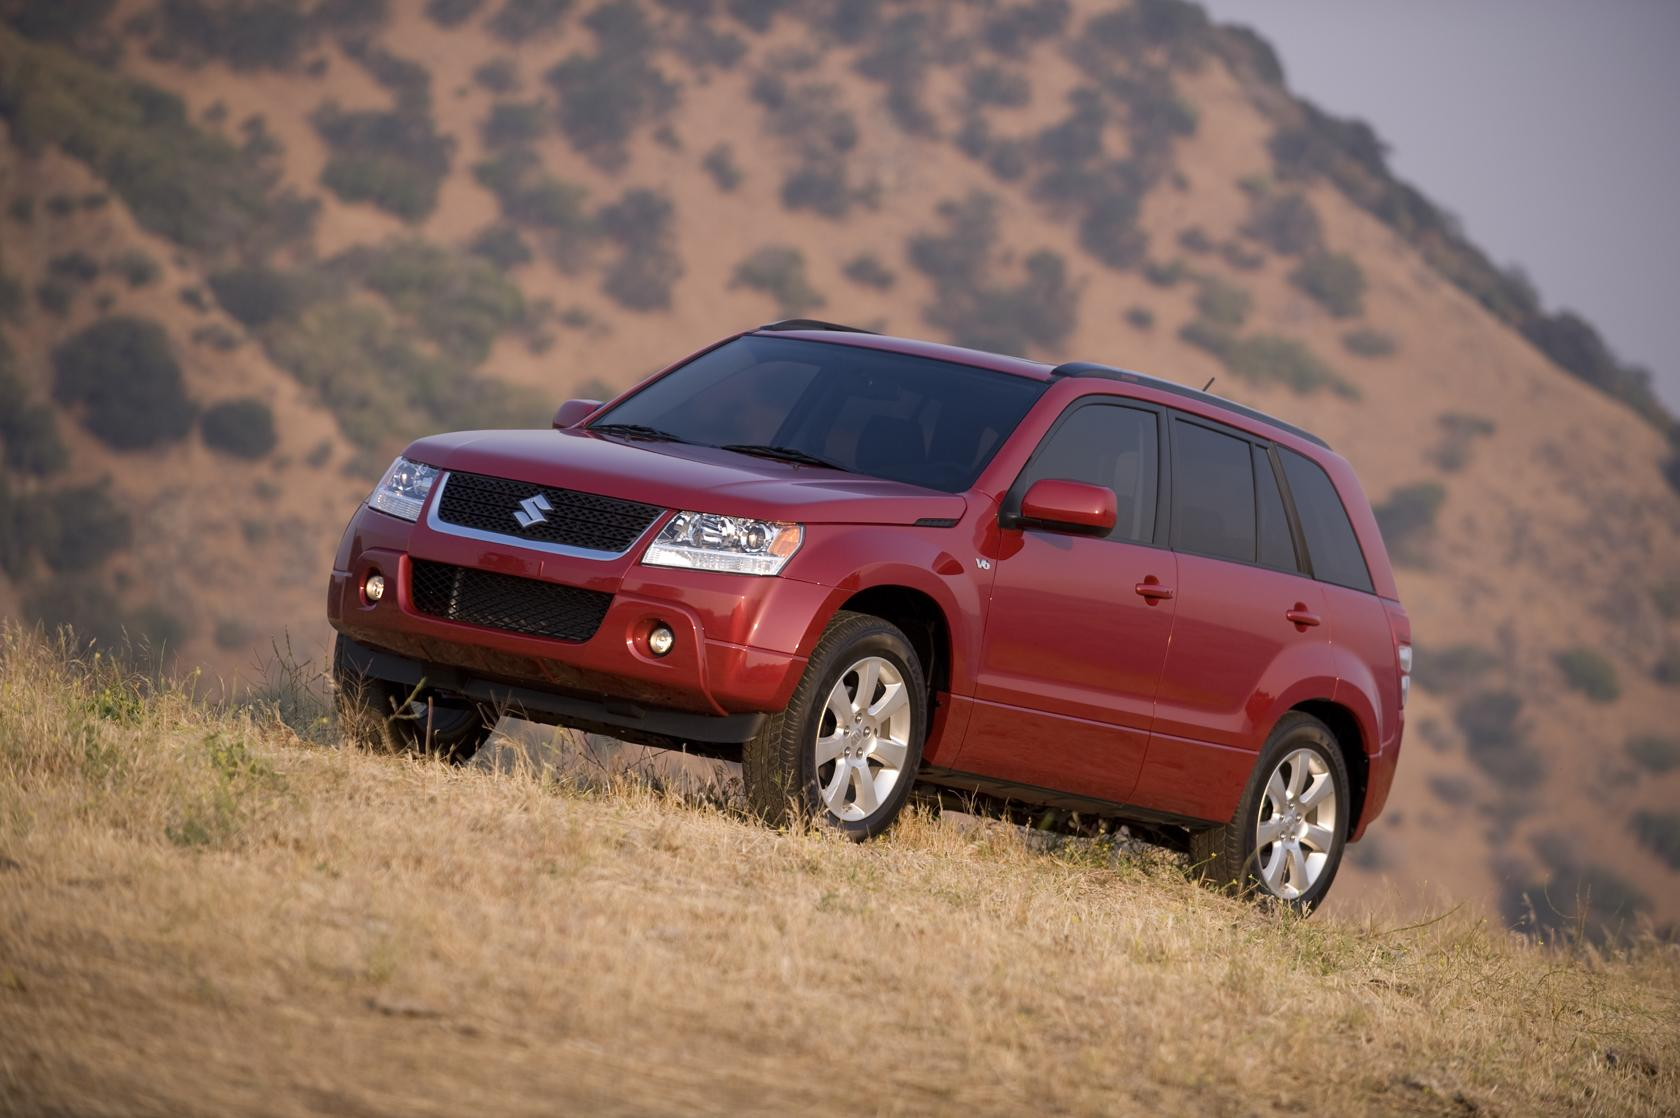 2009 Suzuki Grand Vitara 12 Of